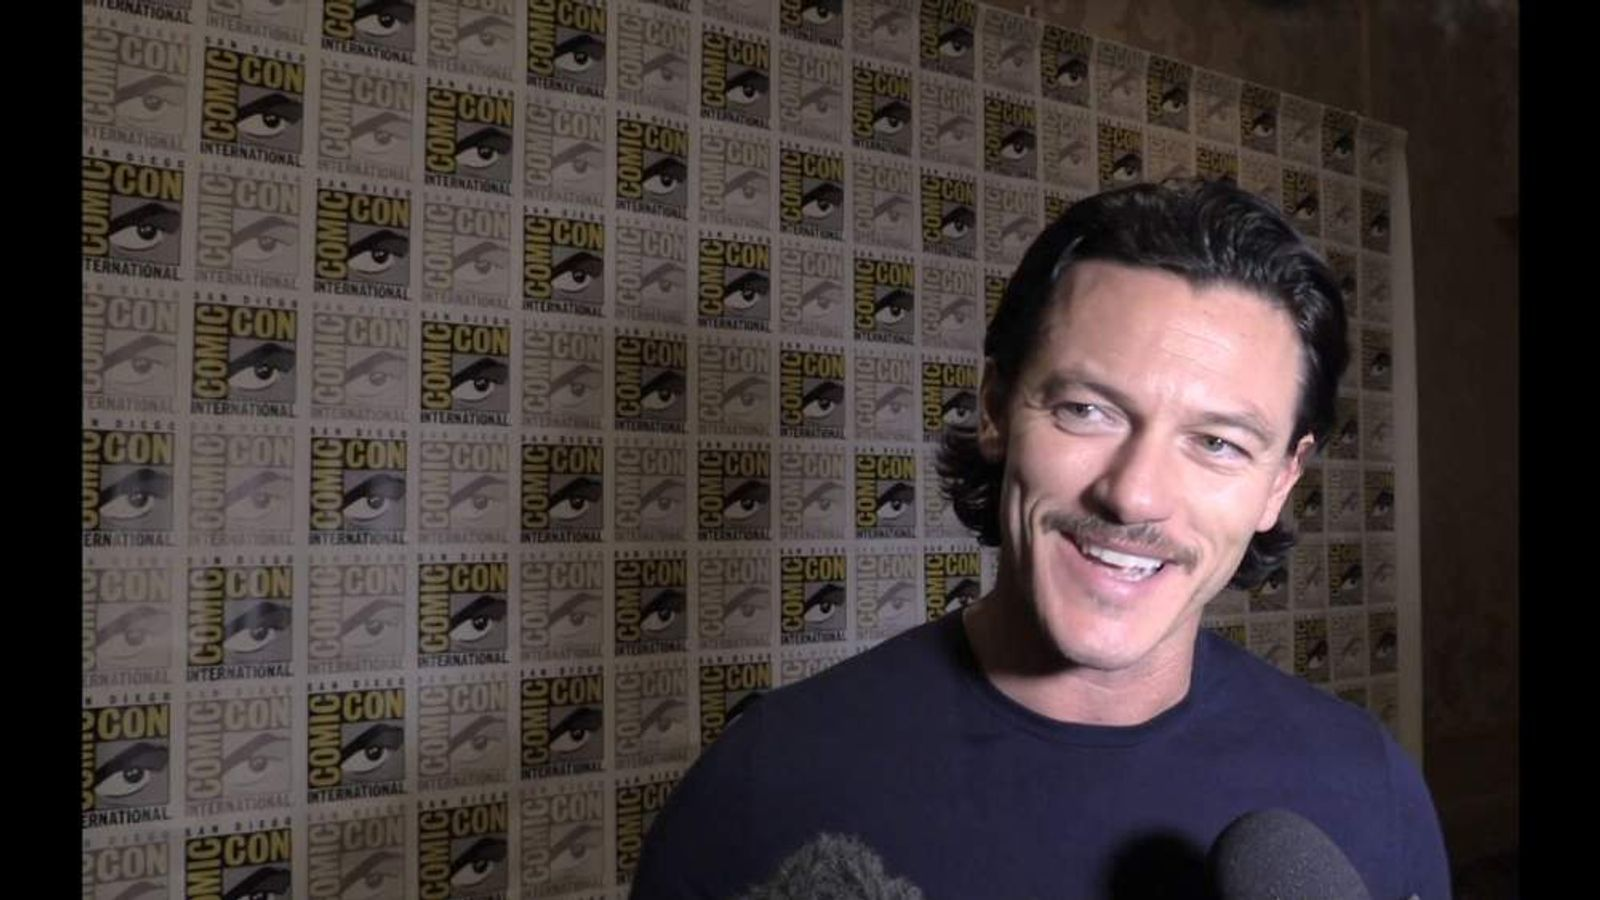 THe Hobbit's Luke Evans at Comic-Con